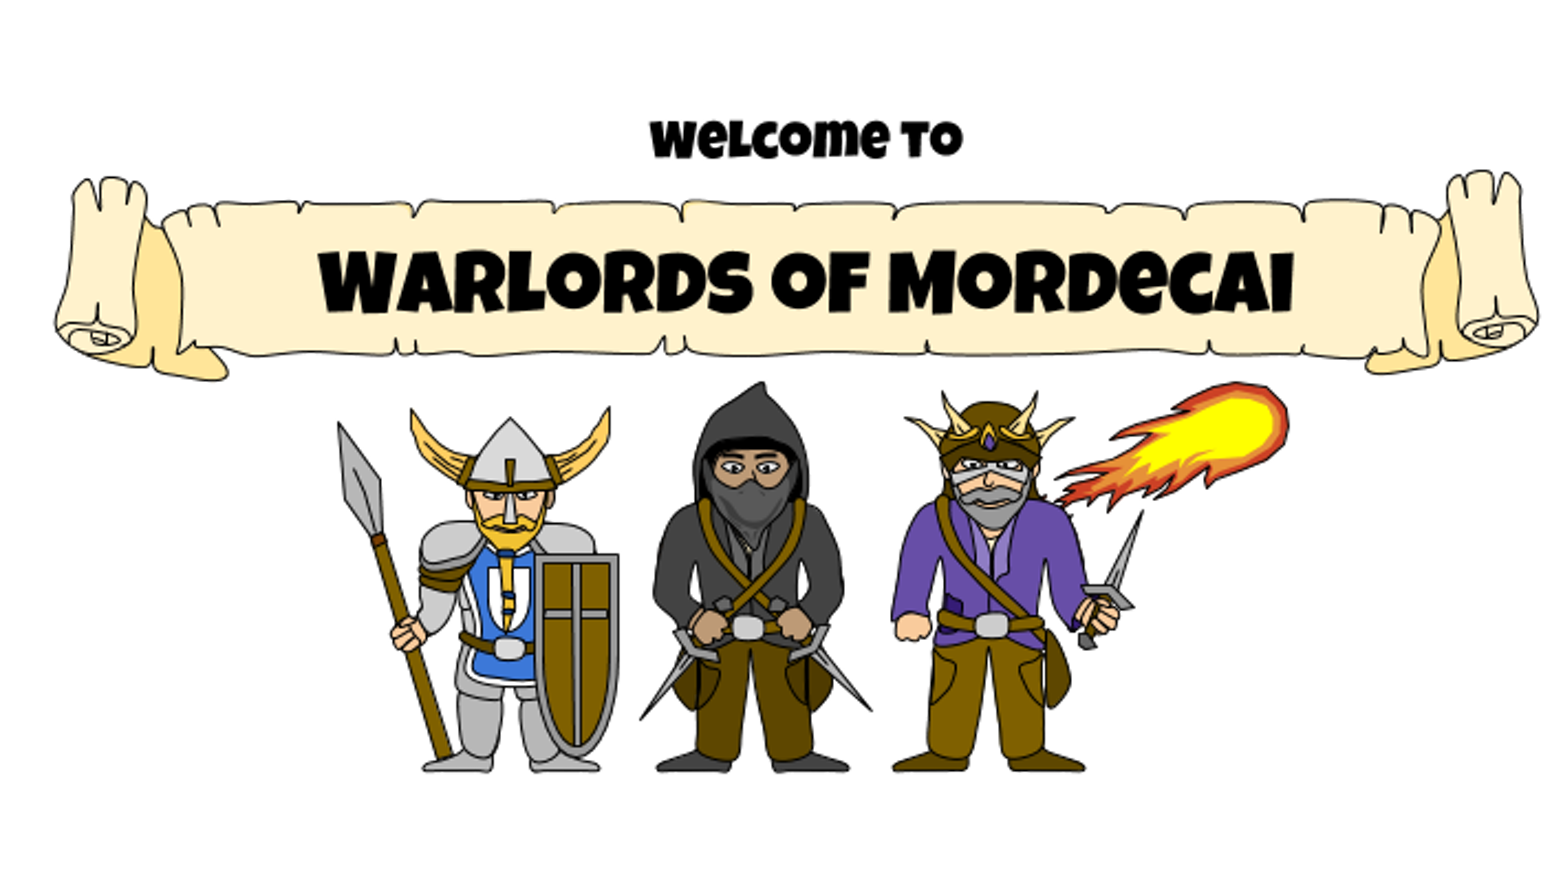 Warlords of Mordecai is a simple, engaging turn-based Role Playing game that is entertaining and accessible to game lovers of all ages